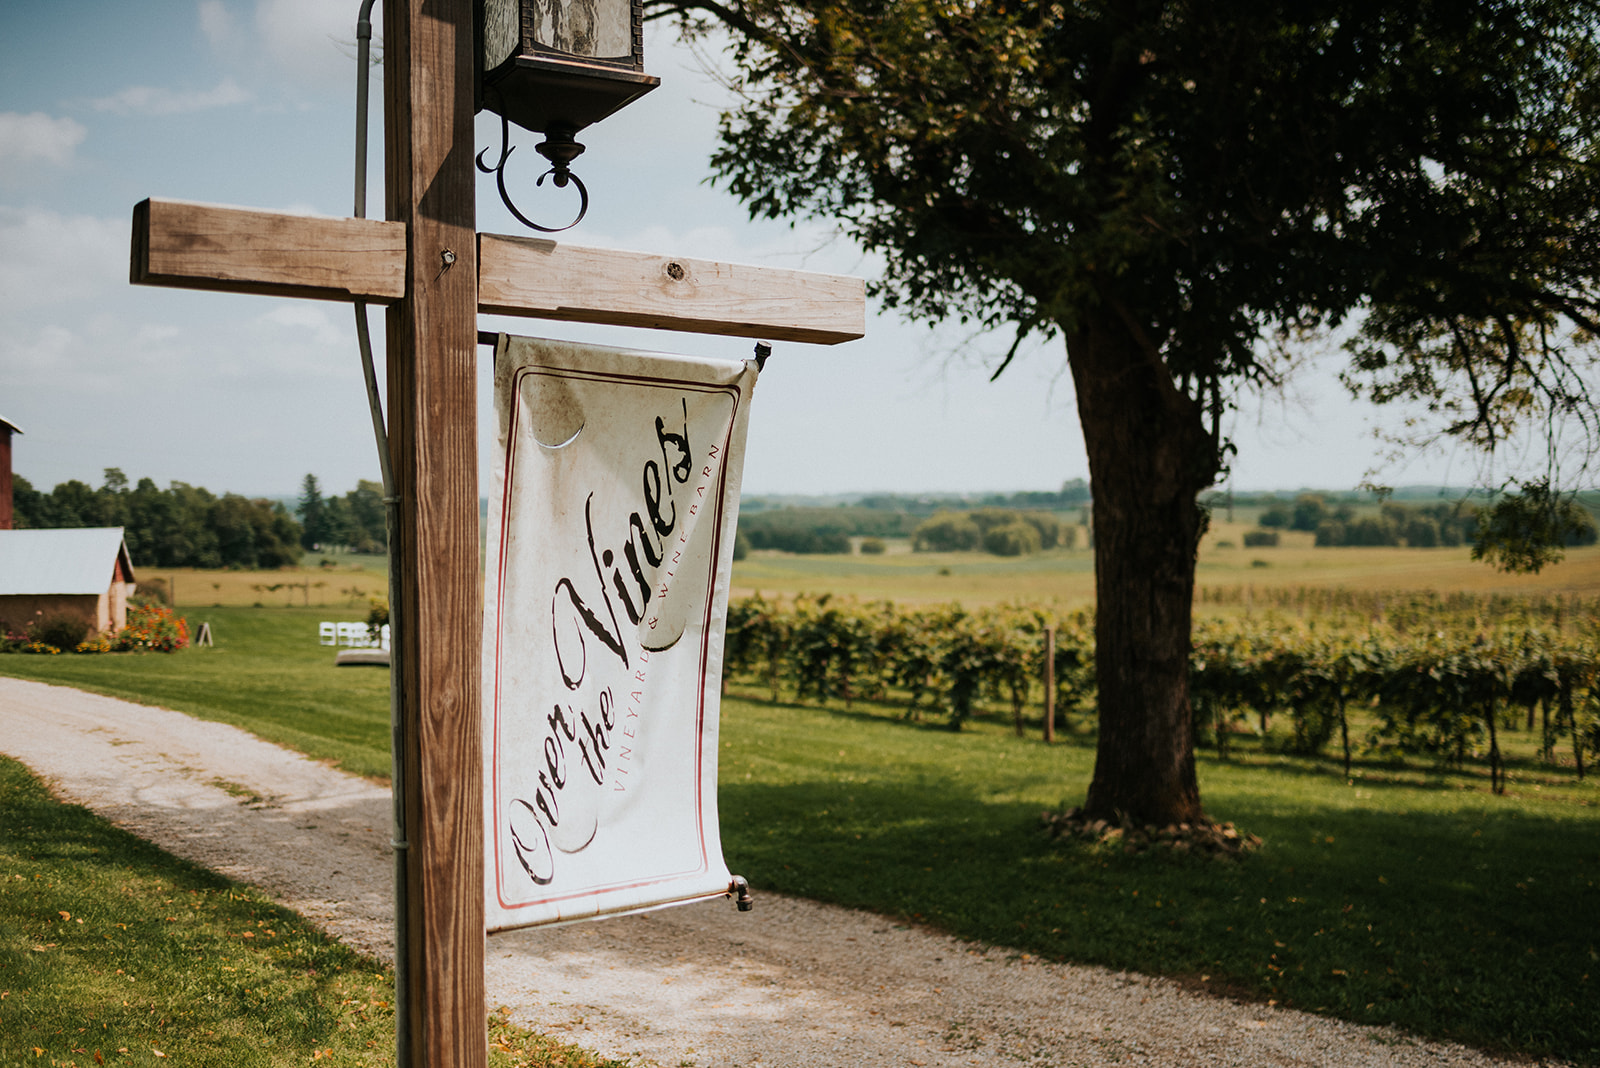 overthevineswisconsinwedding_0001.jpg